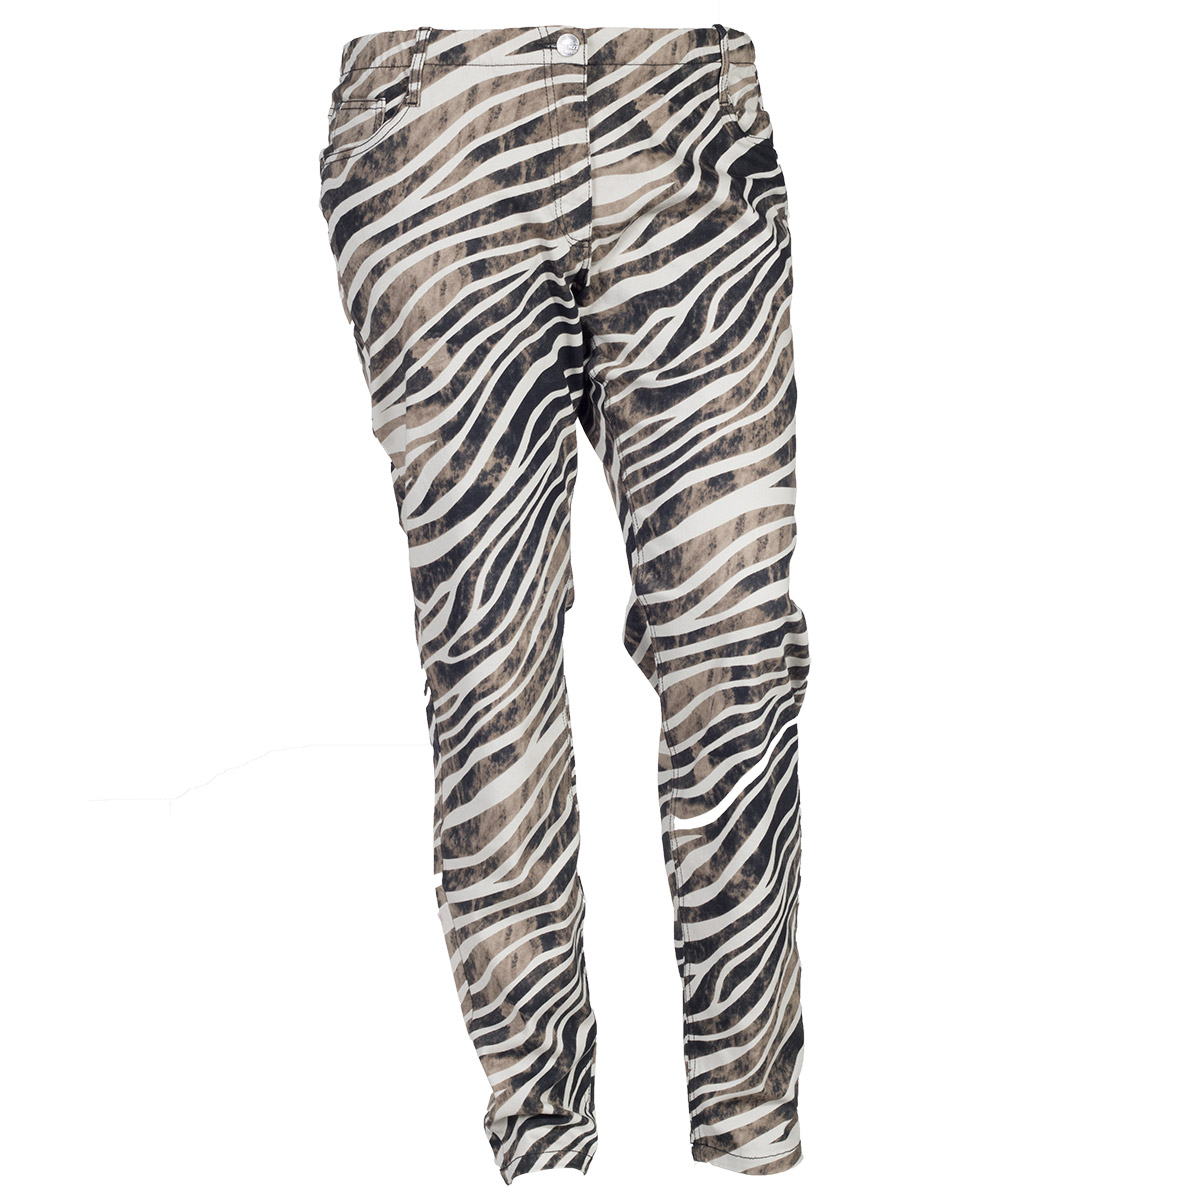 Twist jeans med dyreprint